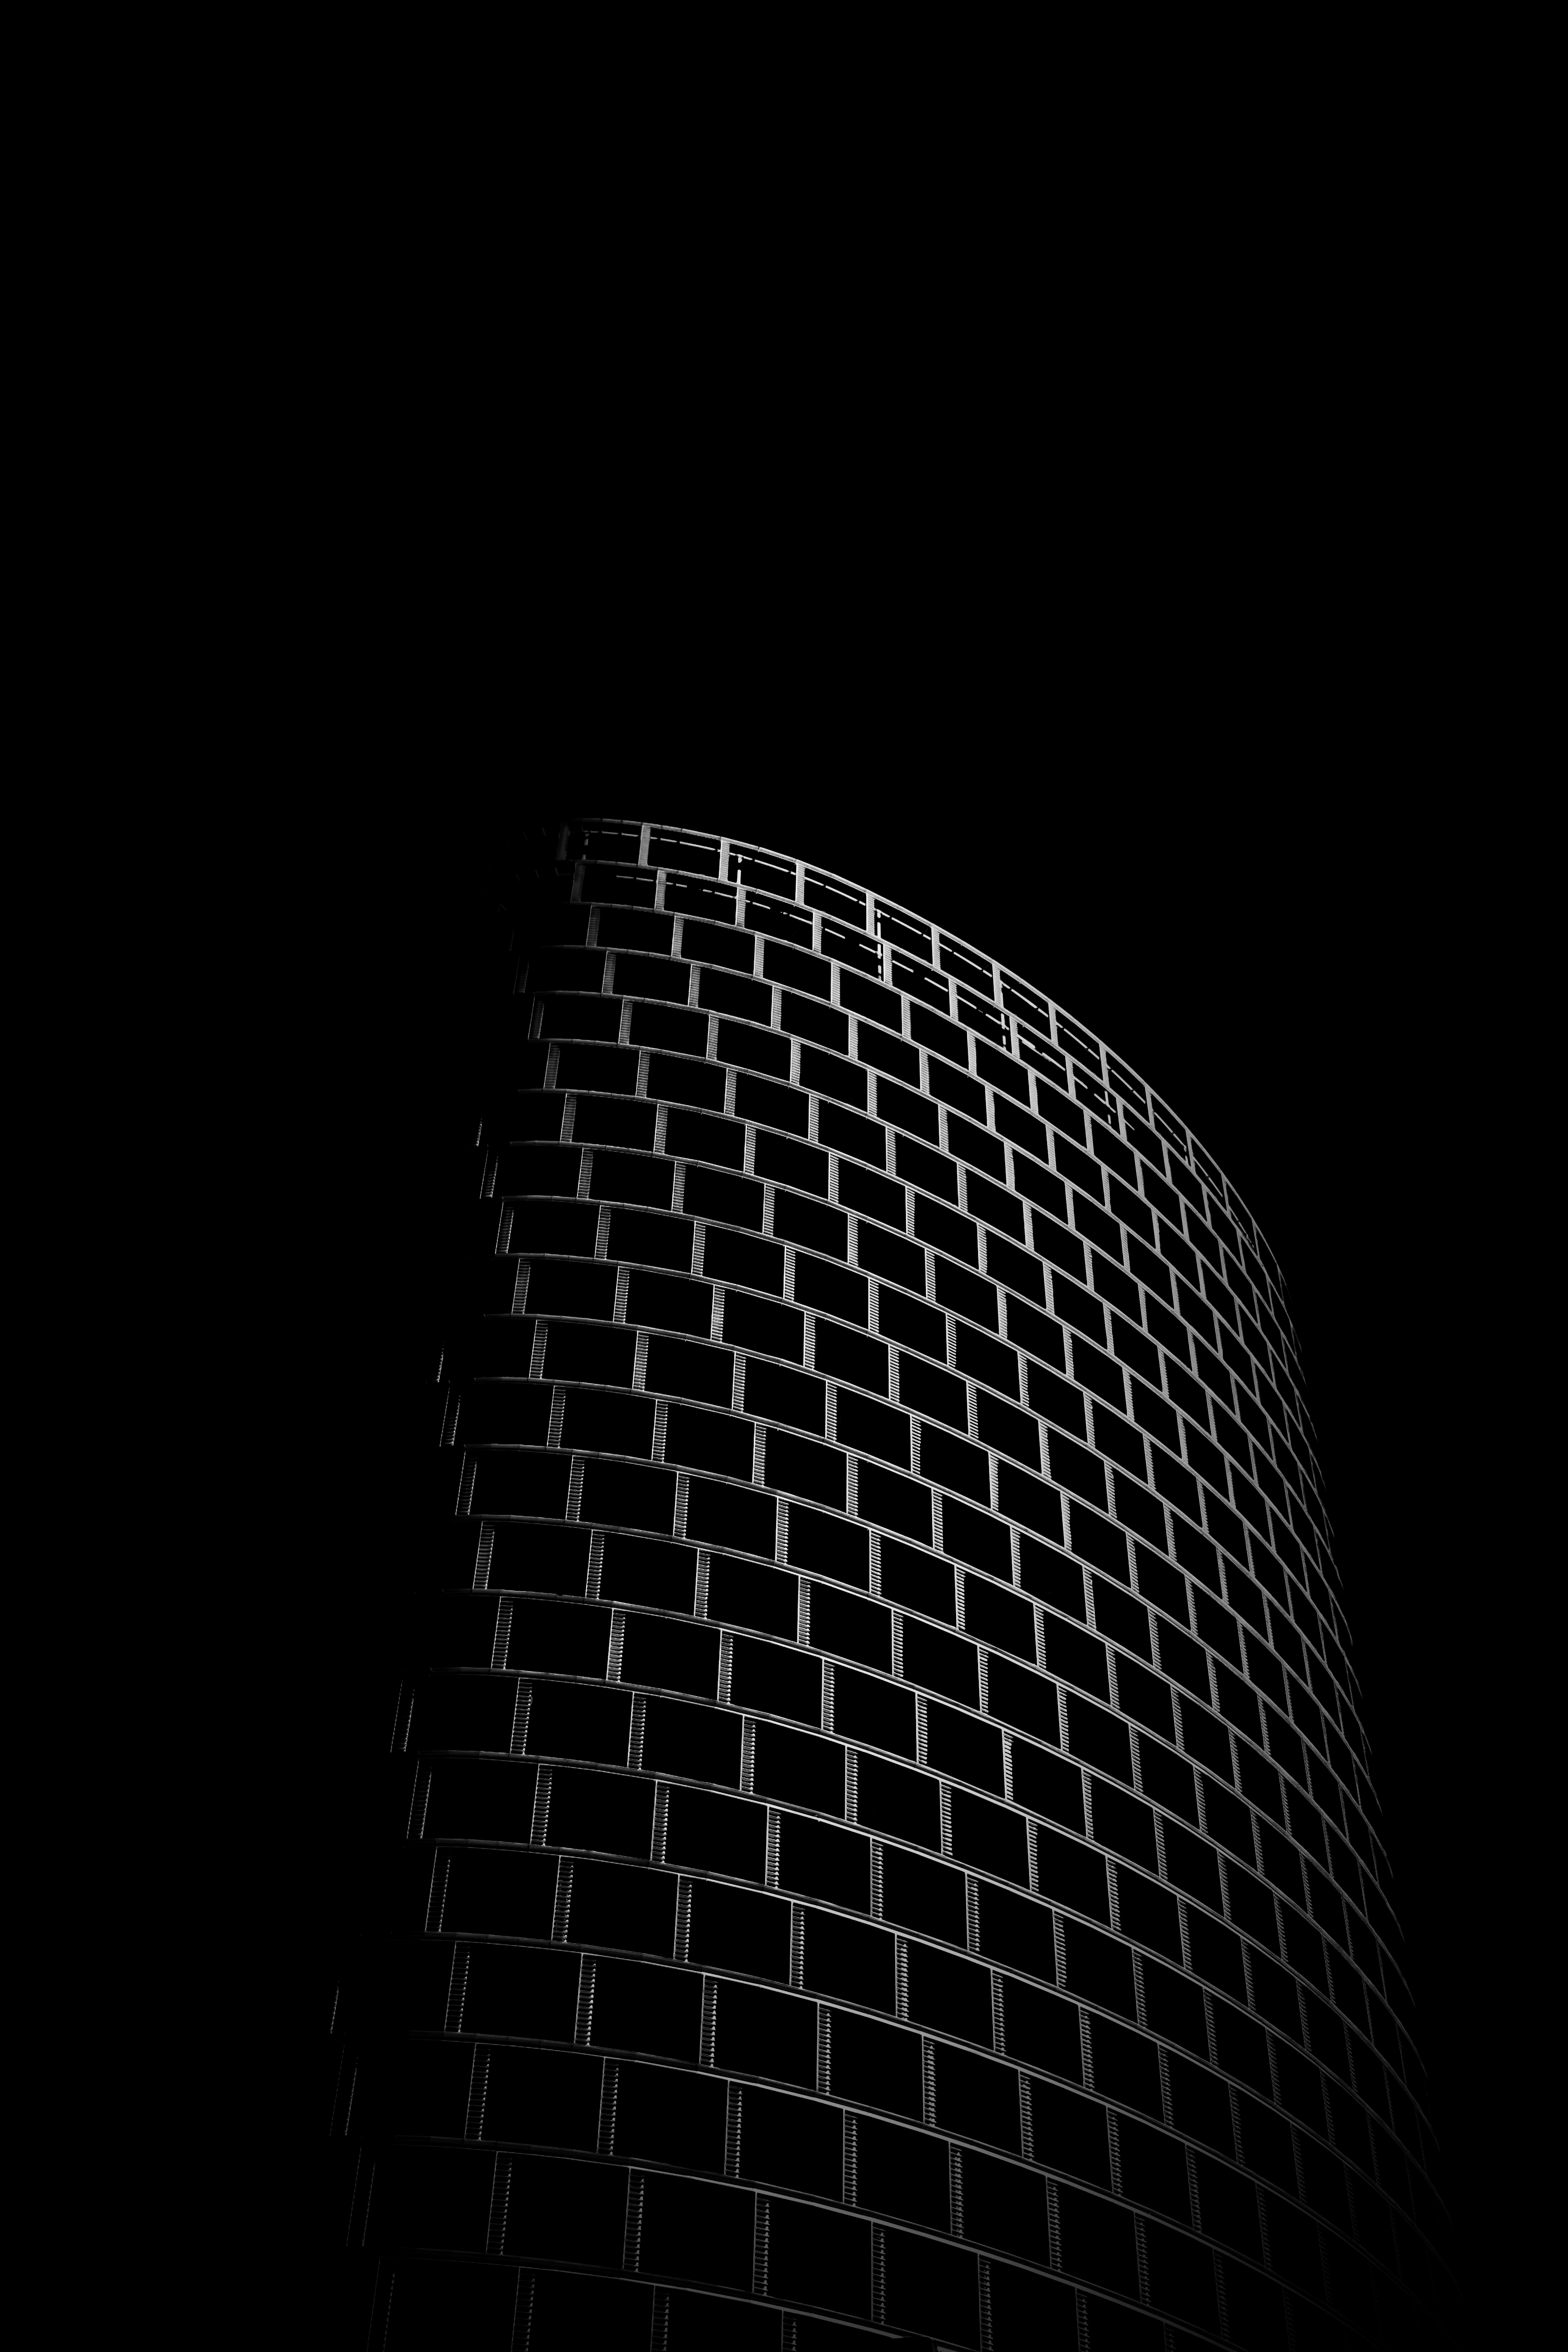 Amoled Wallpapers Free Download 100 Best Free Wallpaper Black And White Black And Dark Photos On Unsplash